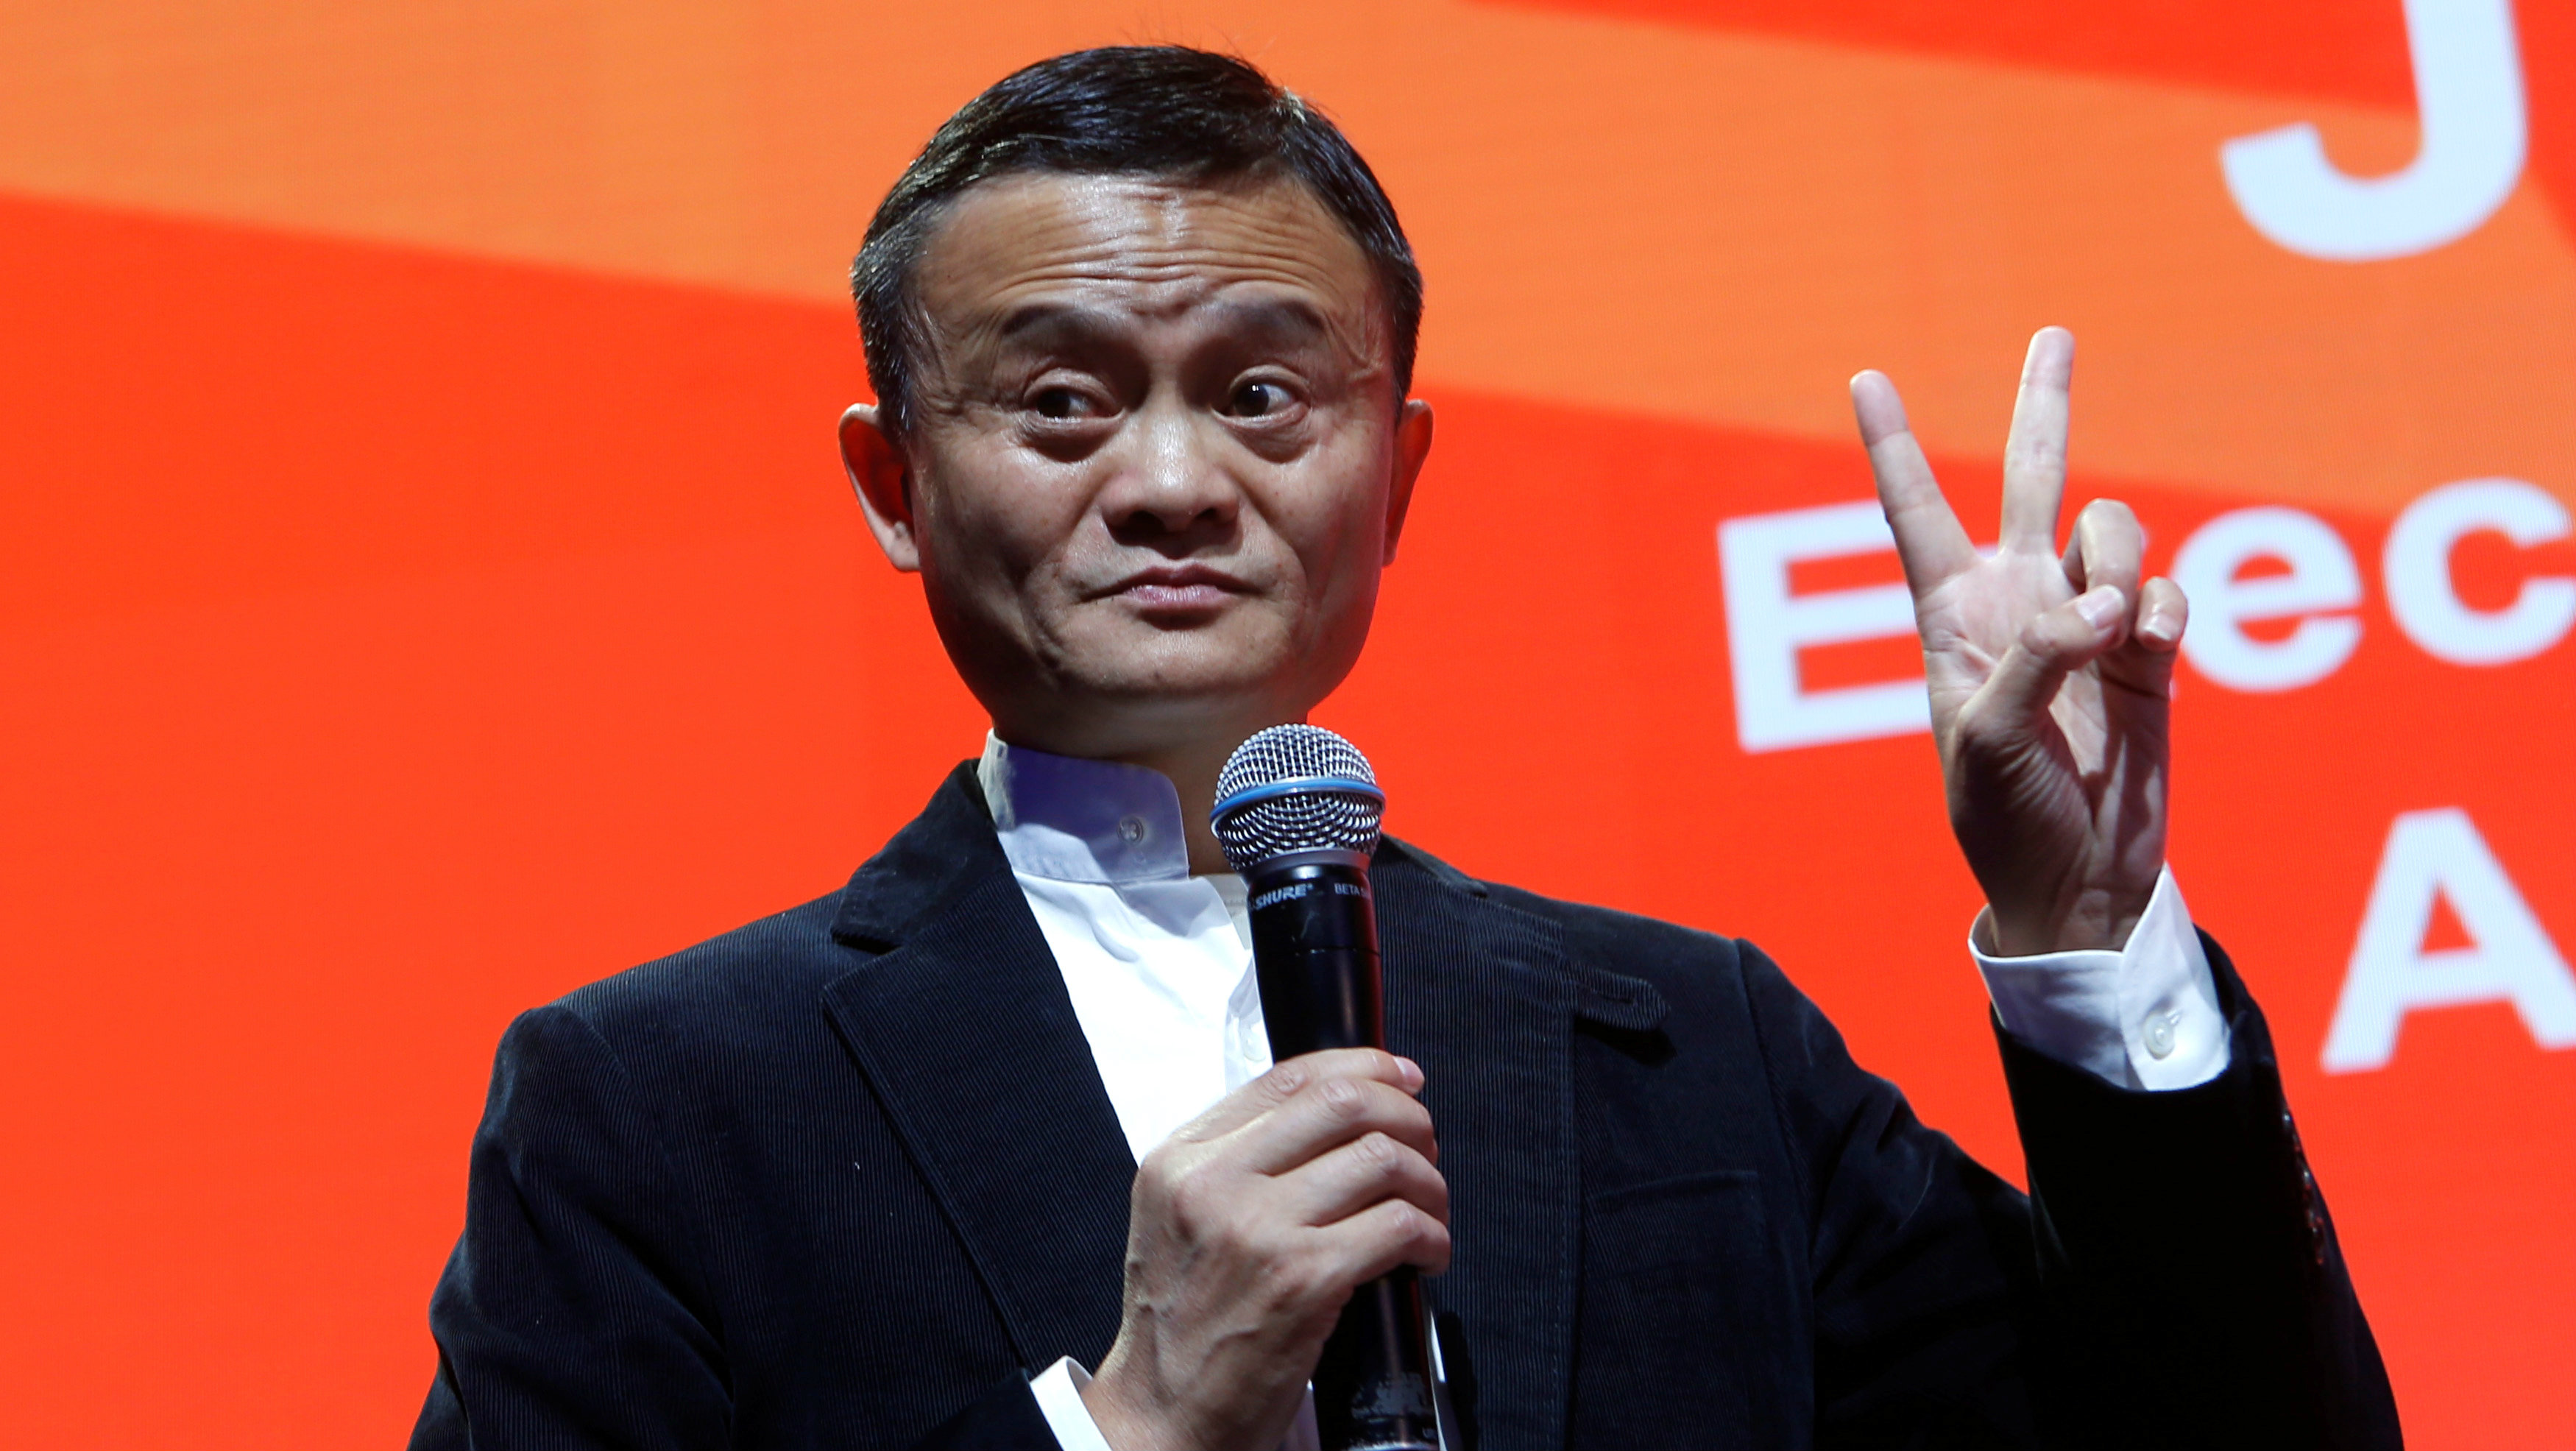 ack Ma, Founder and Executive Chairman of Alibaba Group Holding, addresses the media during the inaugural Gateway '17 event at Cobo Center in Detroit, Michigan, U.S., June 20, 2017